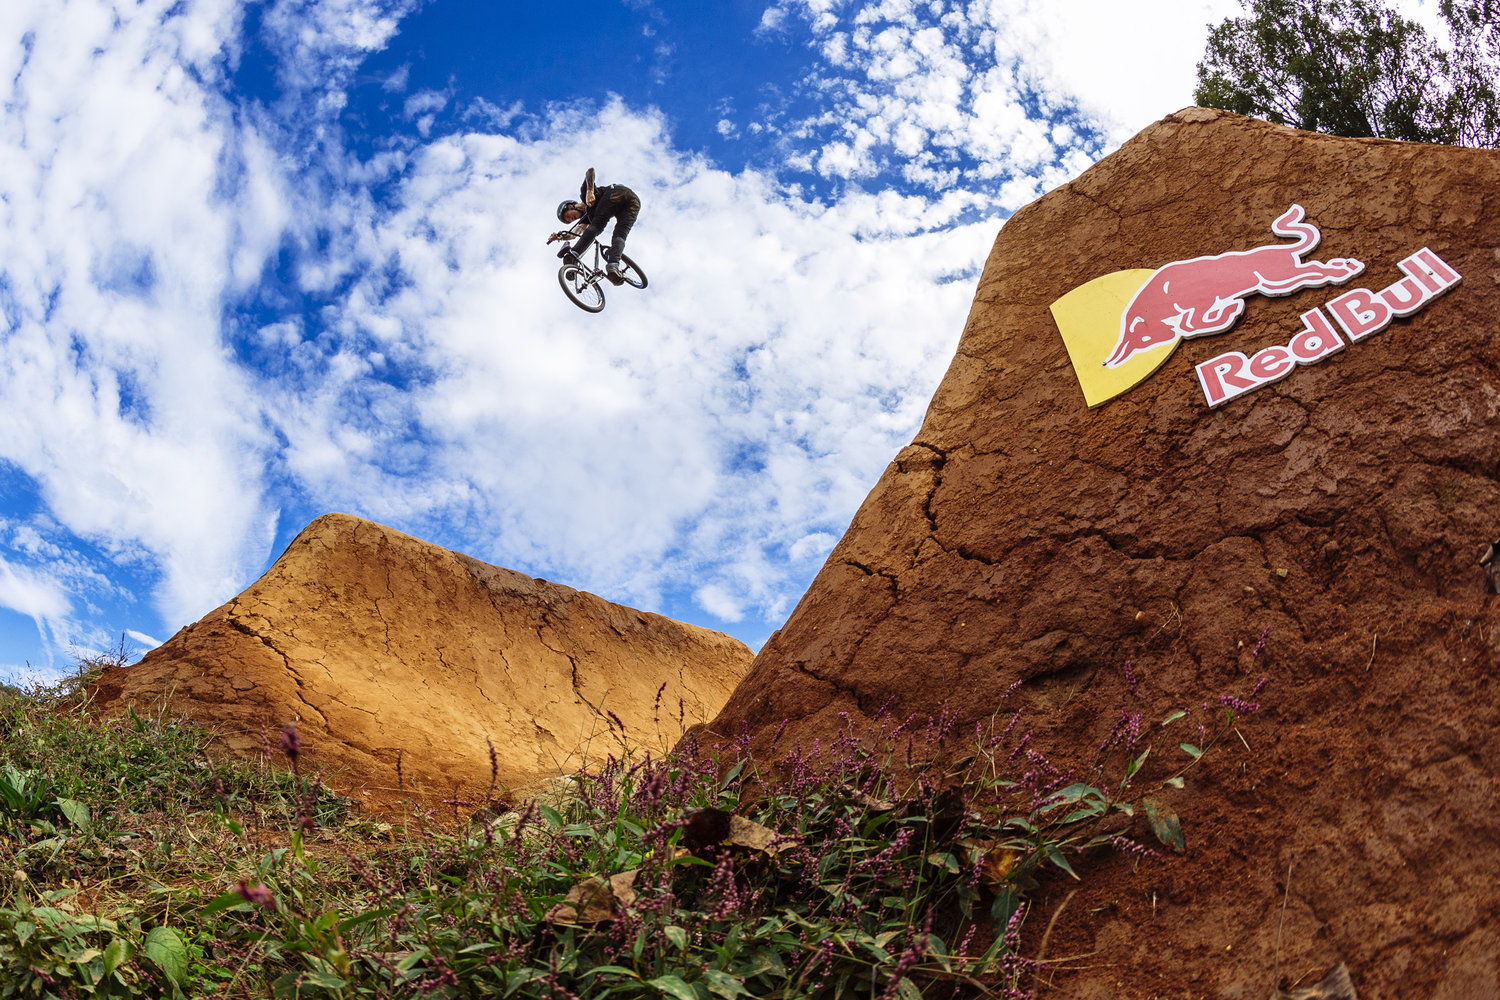 James Foster, barspin to turndown© Marv Watson/Red Bull Content Pool